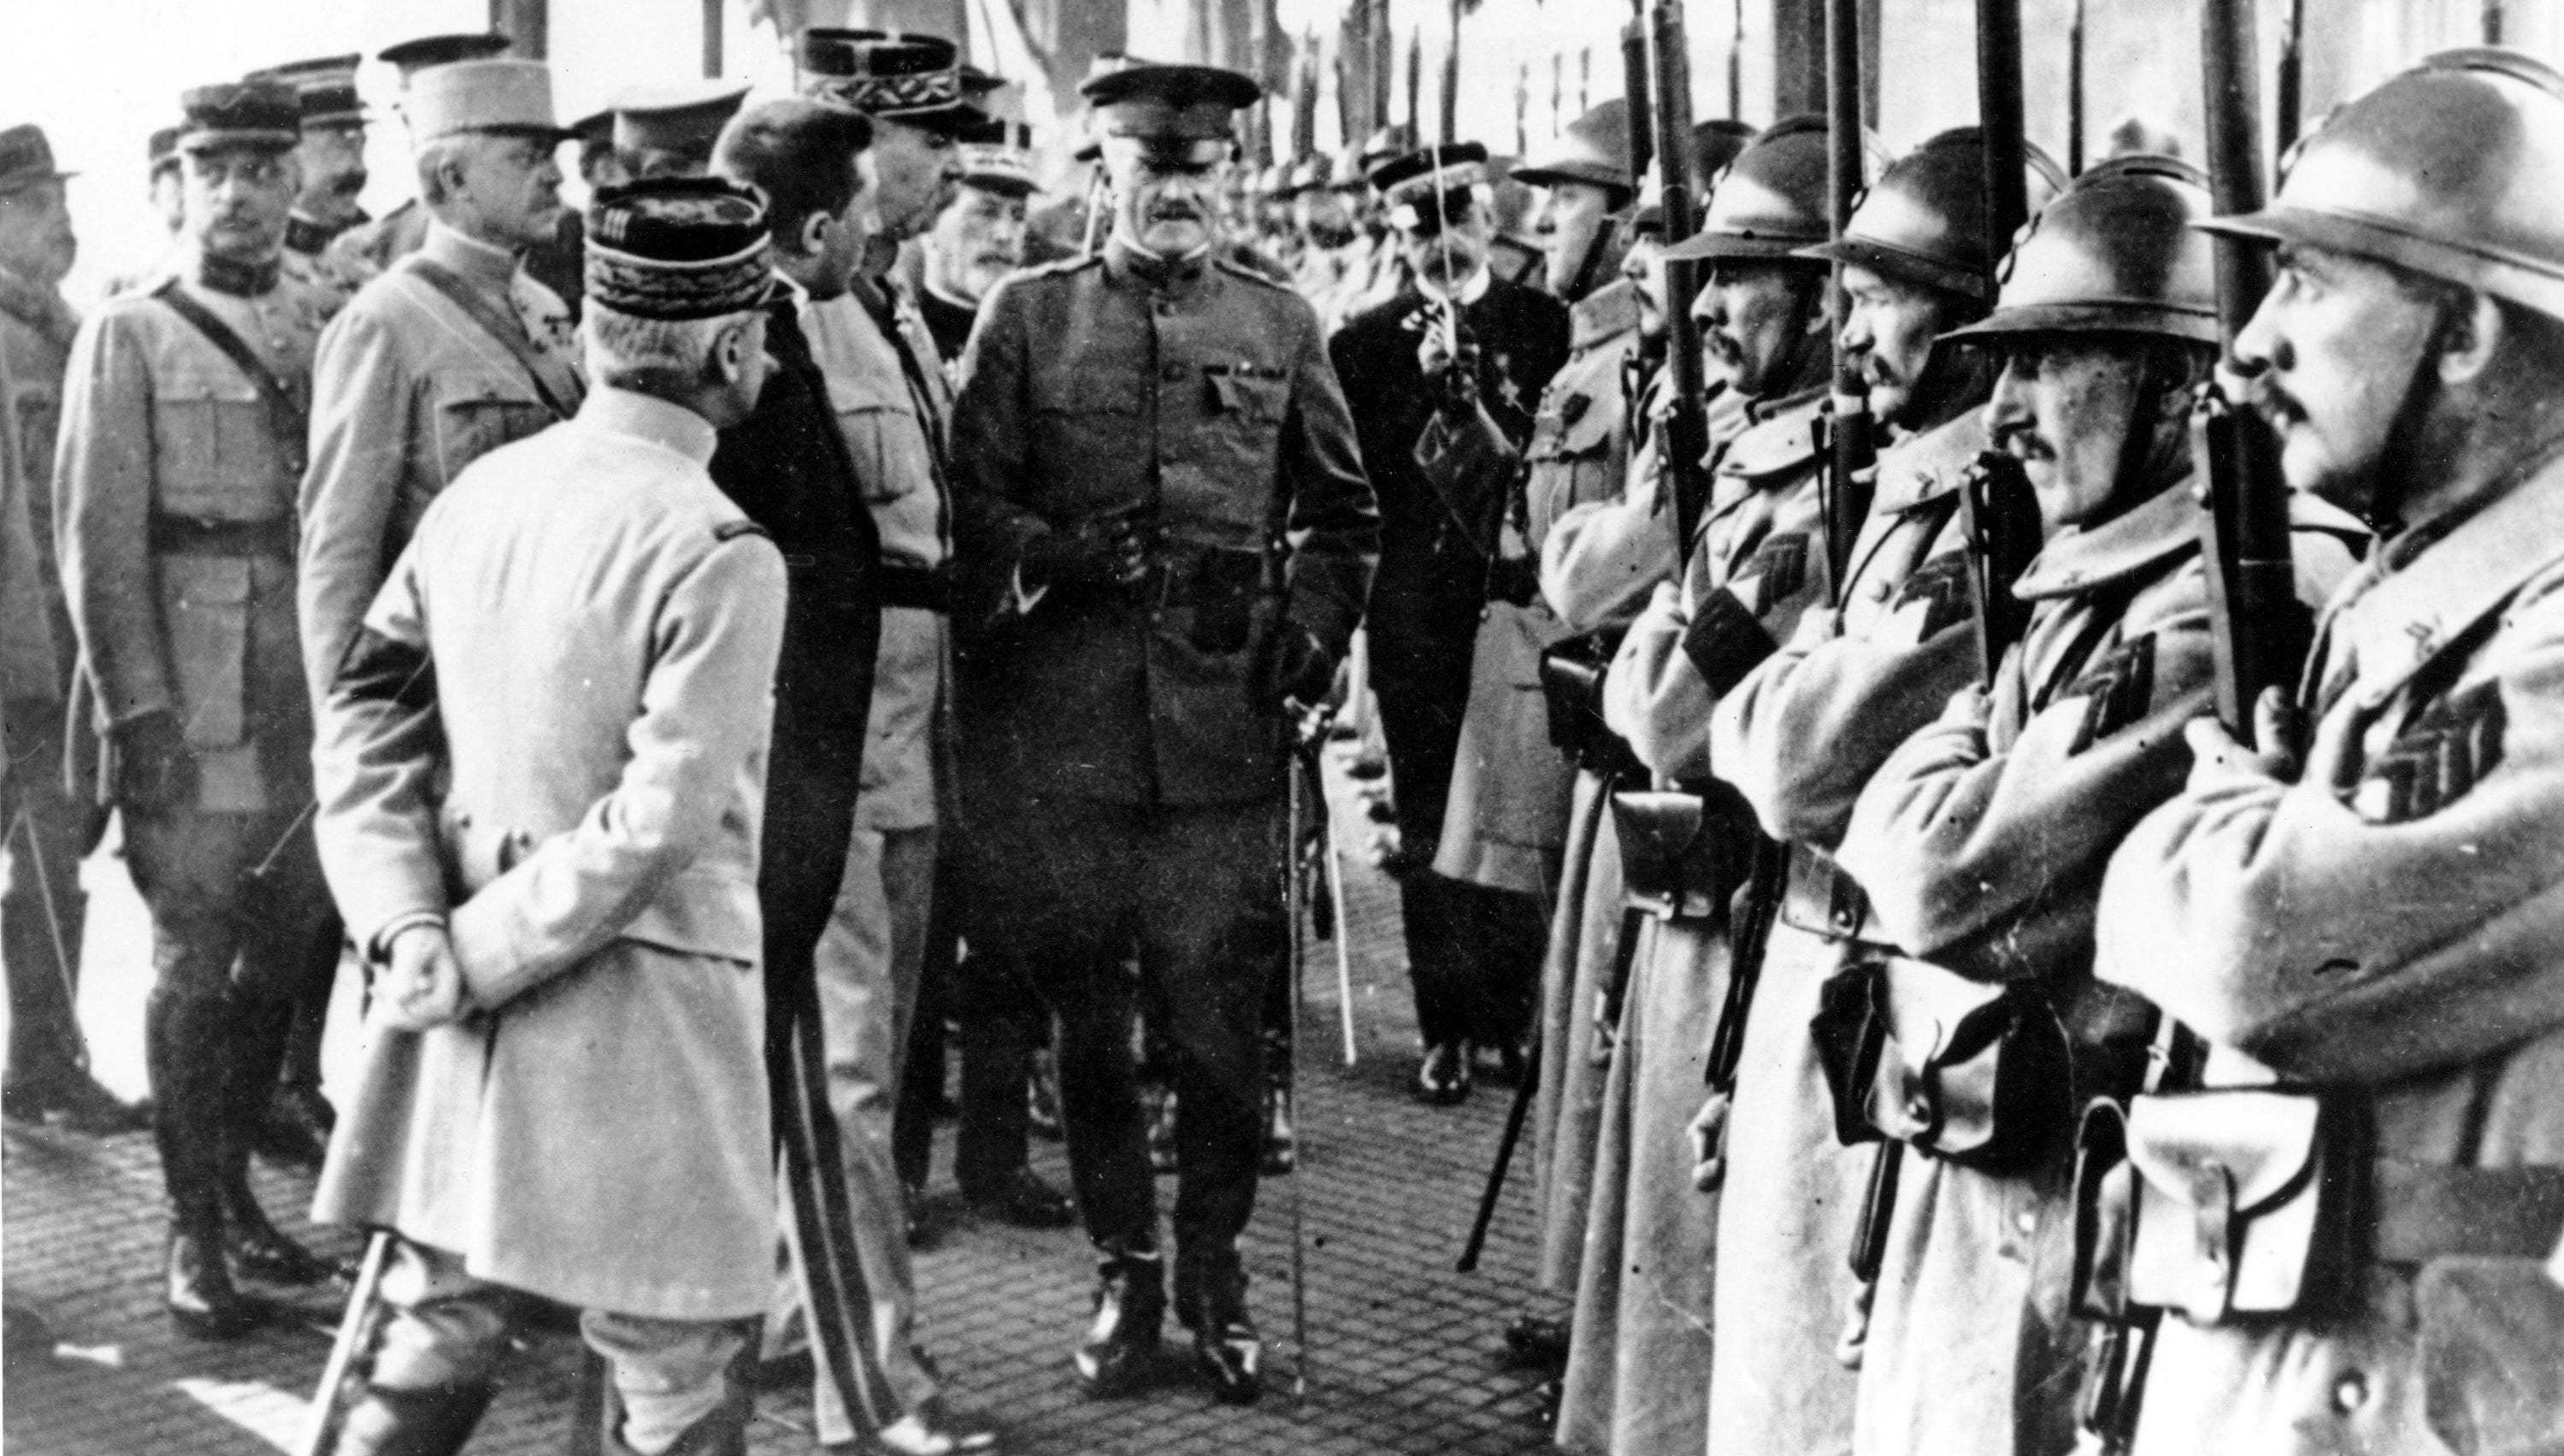 Six things to know about New Jersey's ties to World War I